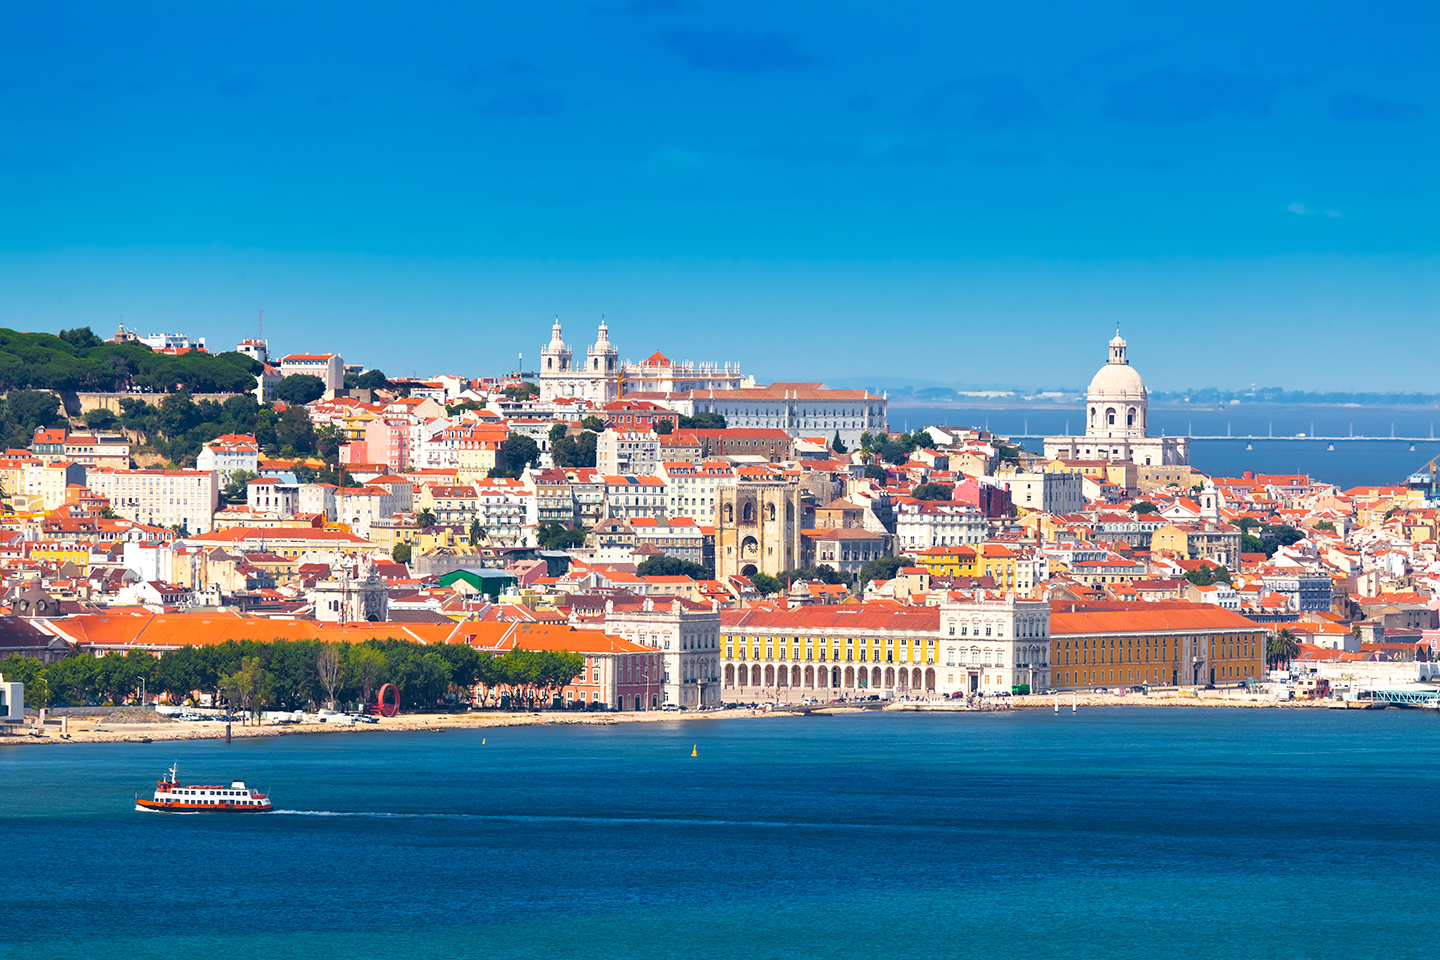 Old buildings in Lisbon, Portugal, taken from the sea with a boat in the bottom left of the photo.